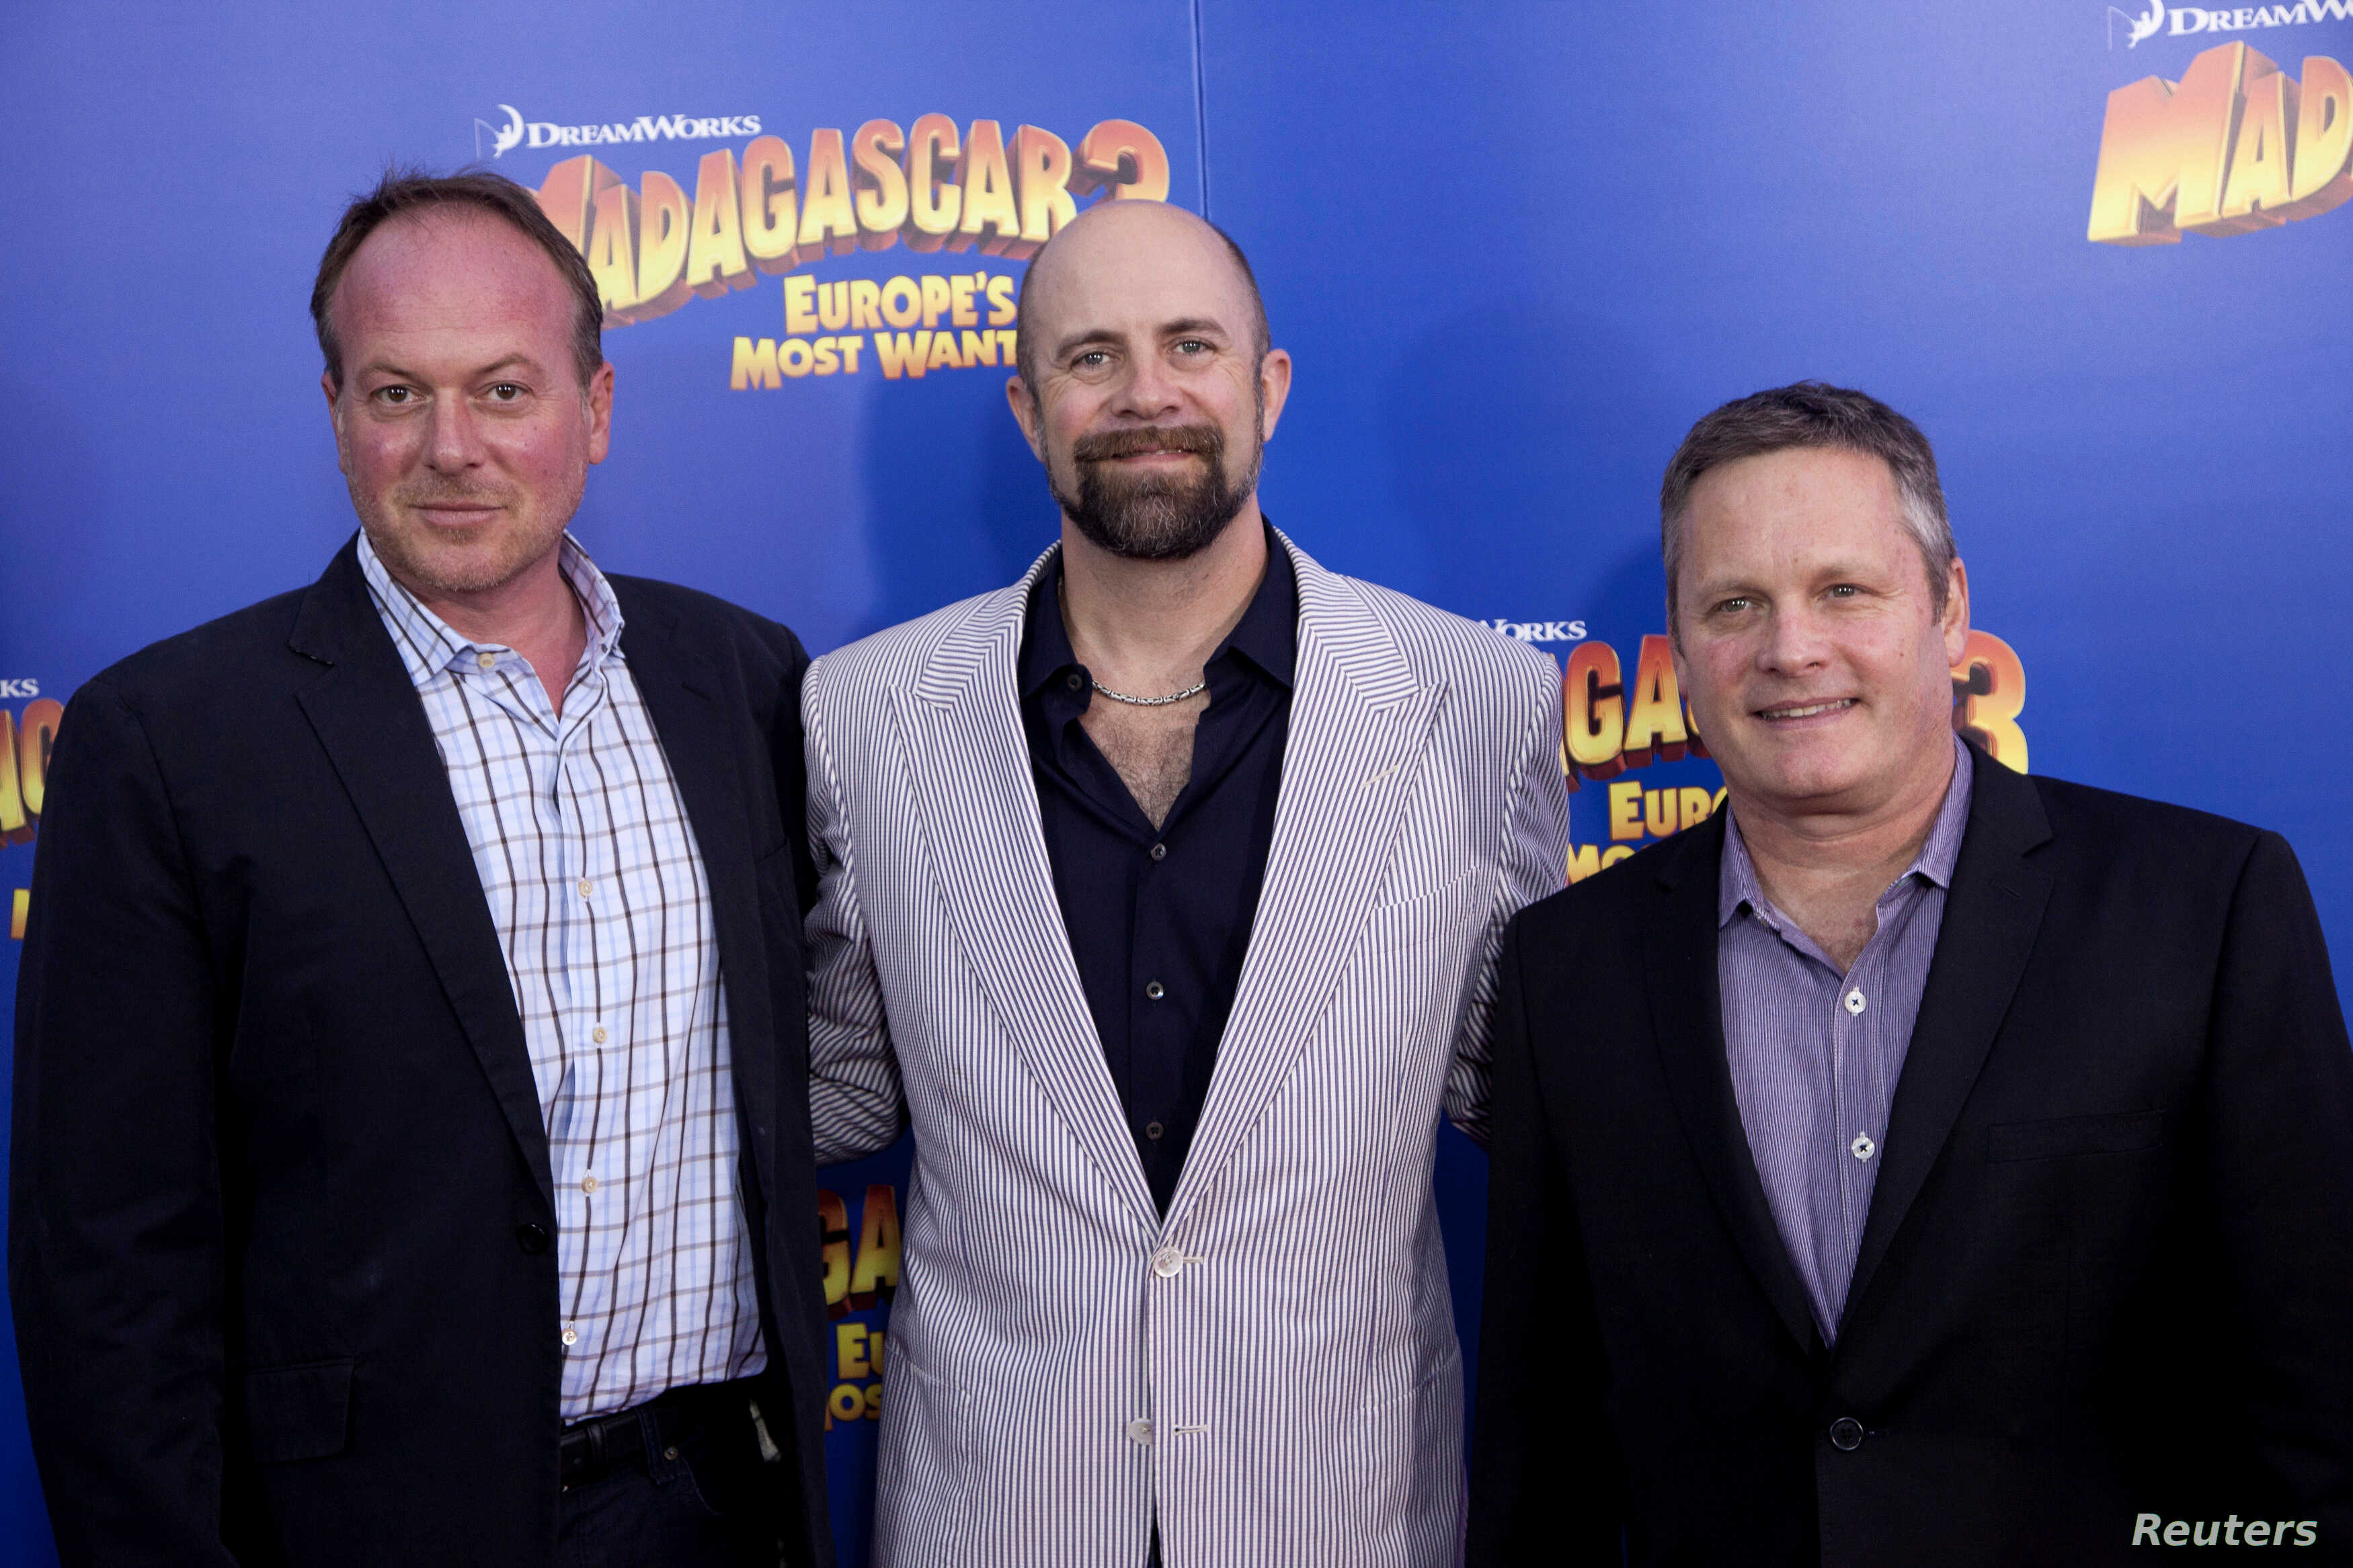 """FILE - Directors Tom McGrath (L), Conrad Vernon and Eric Darnell (R) arrive for the premiere of """"Madagascar 3: Europe's Most Wanted"""", in New York, June 7, 2012."""